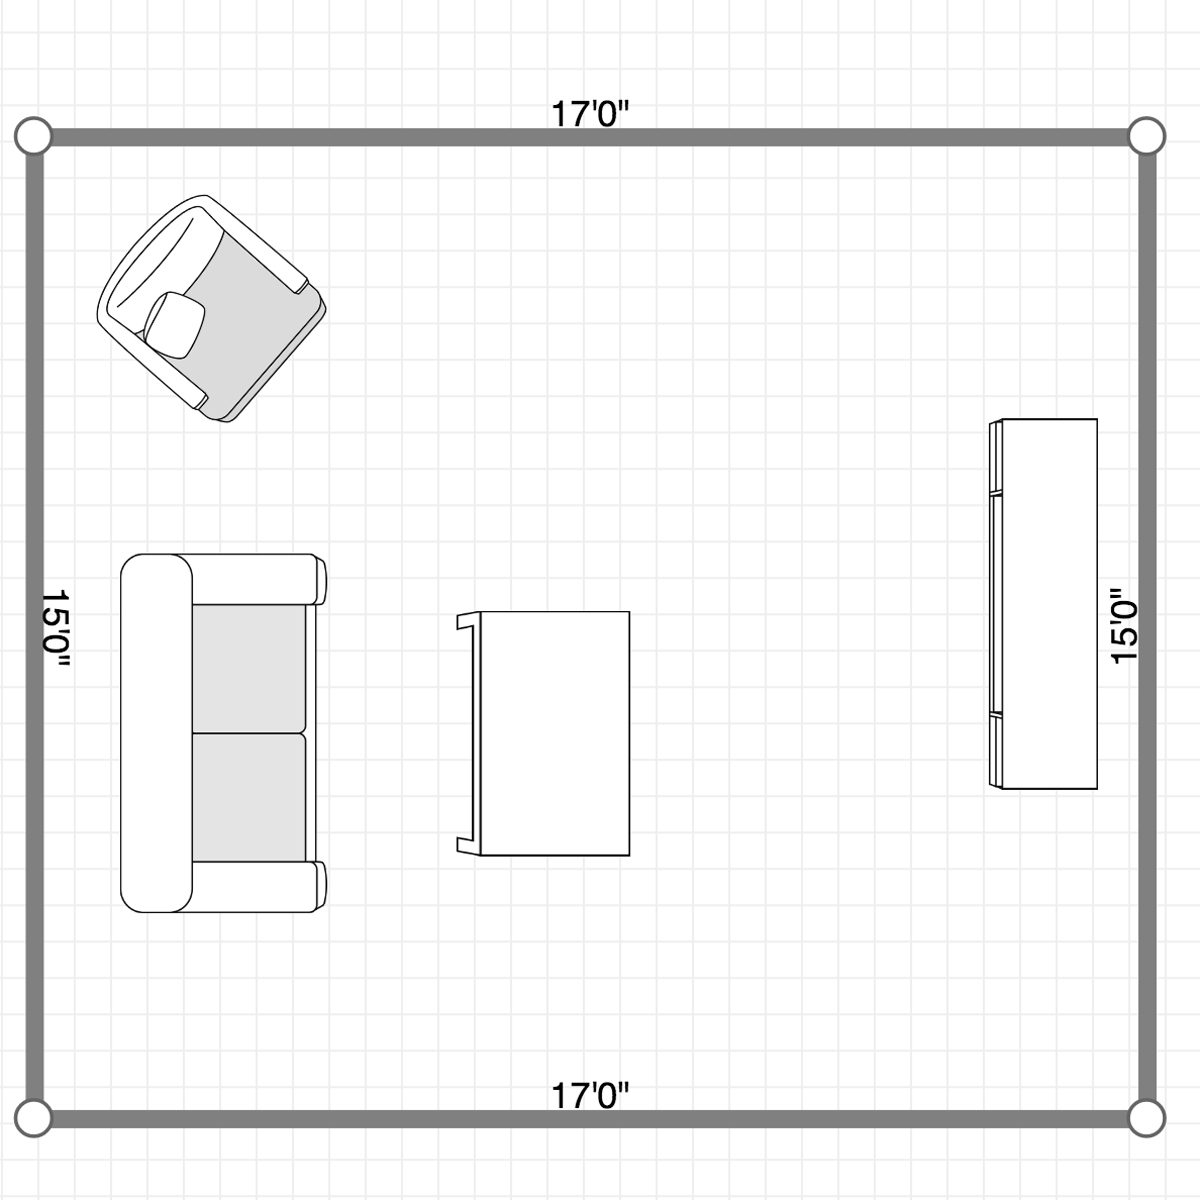 Measure Furniture to see if it'll fit in new Place